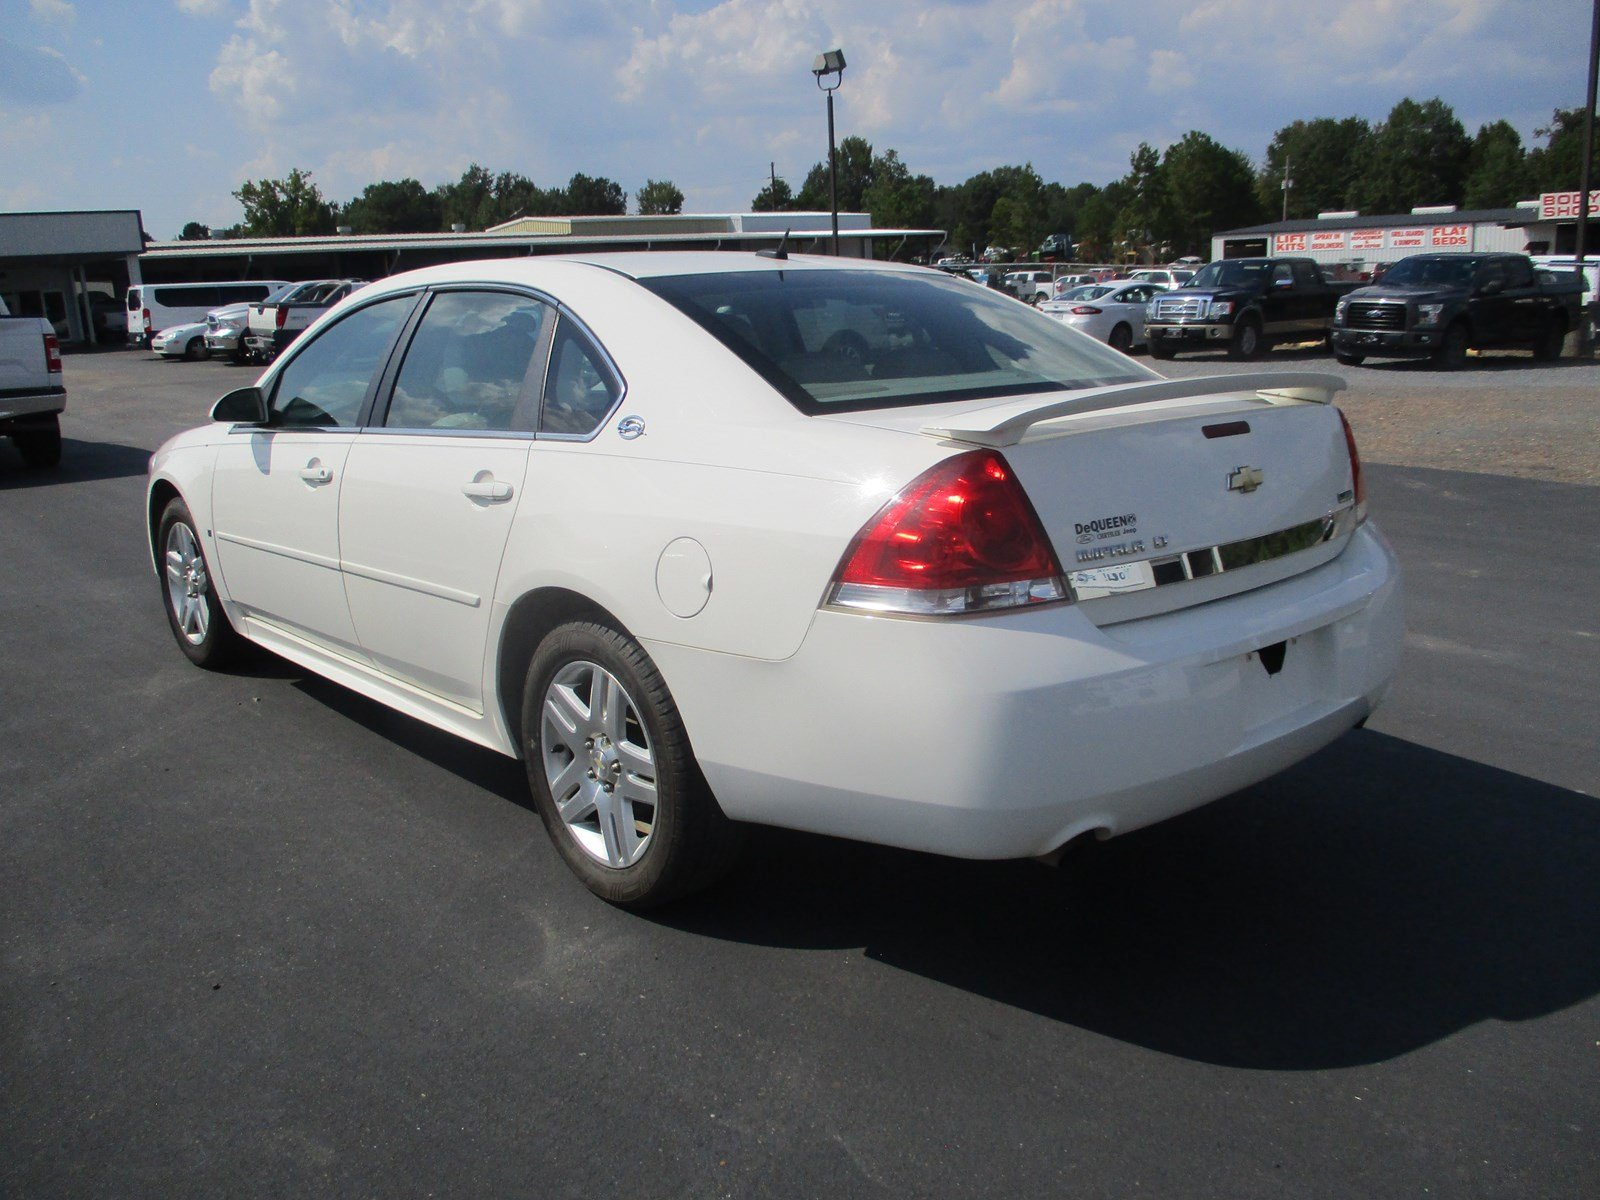 Pre Owned 2009 Chevrolet Impala 3 9L LT 4dr Car in De Queen